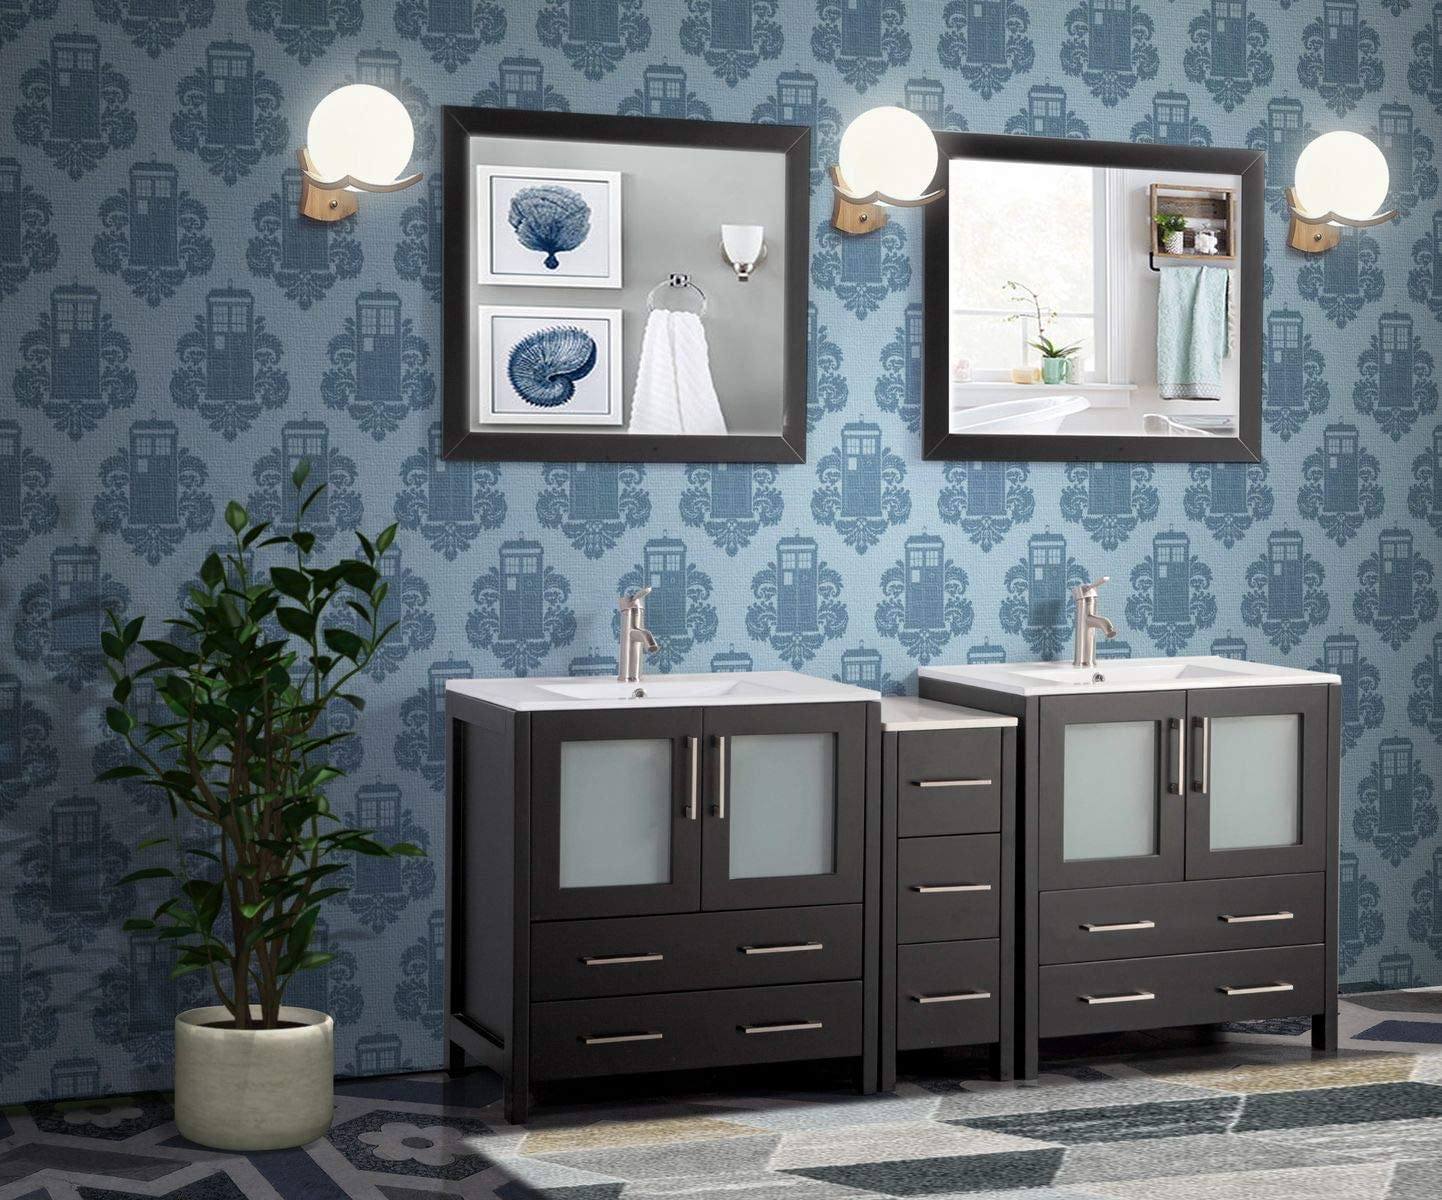 Amazon Com Vanity Art 72 Inch Double Sink Modern Bathroom Vanity Combo Set 2 Shelves 7 Drawers Ceramic Top Under Mount Sink Bathroom Cabinet With Two Free Mirror Va3030 72 E Kitchen Dining